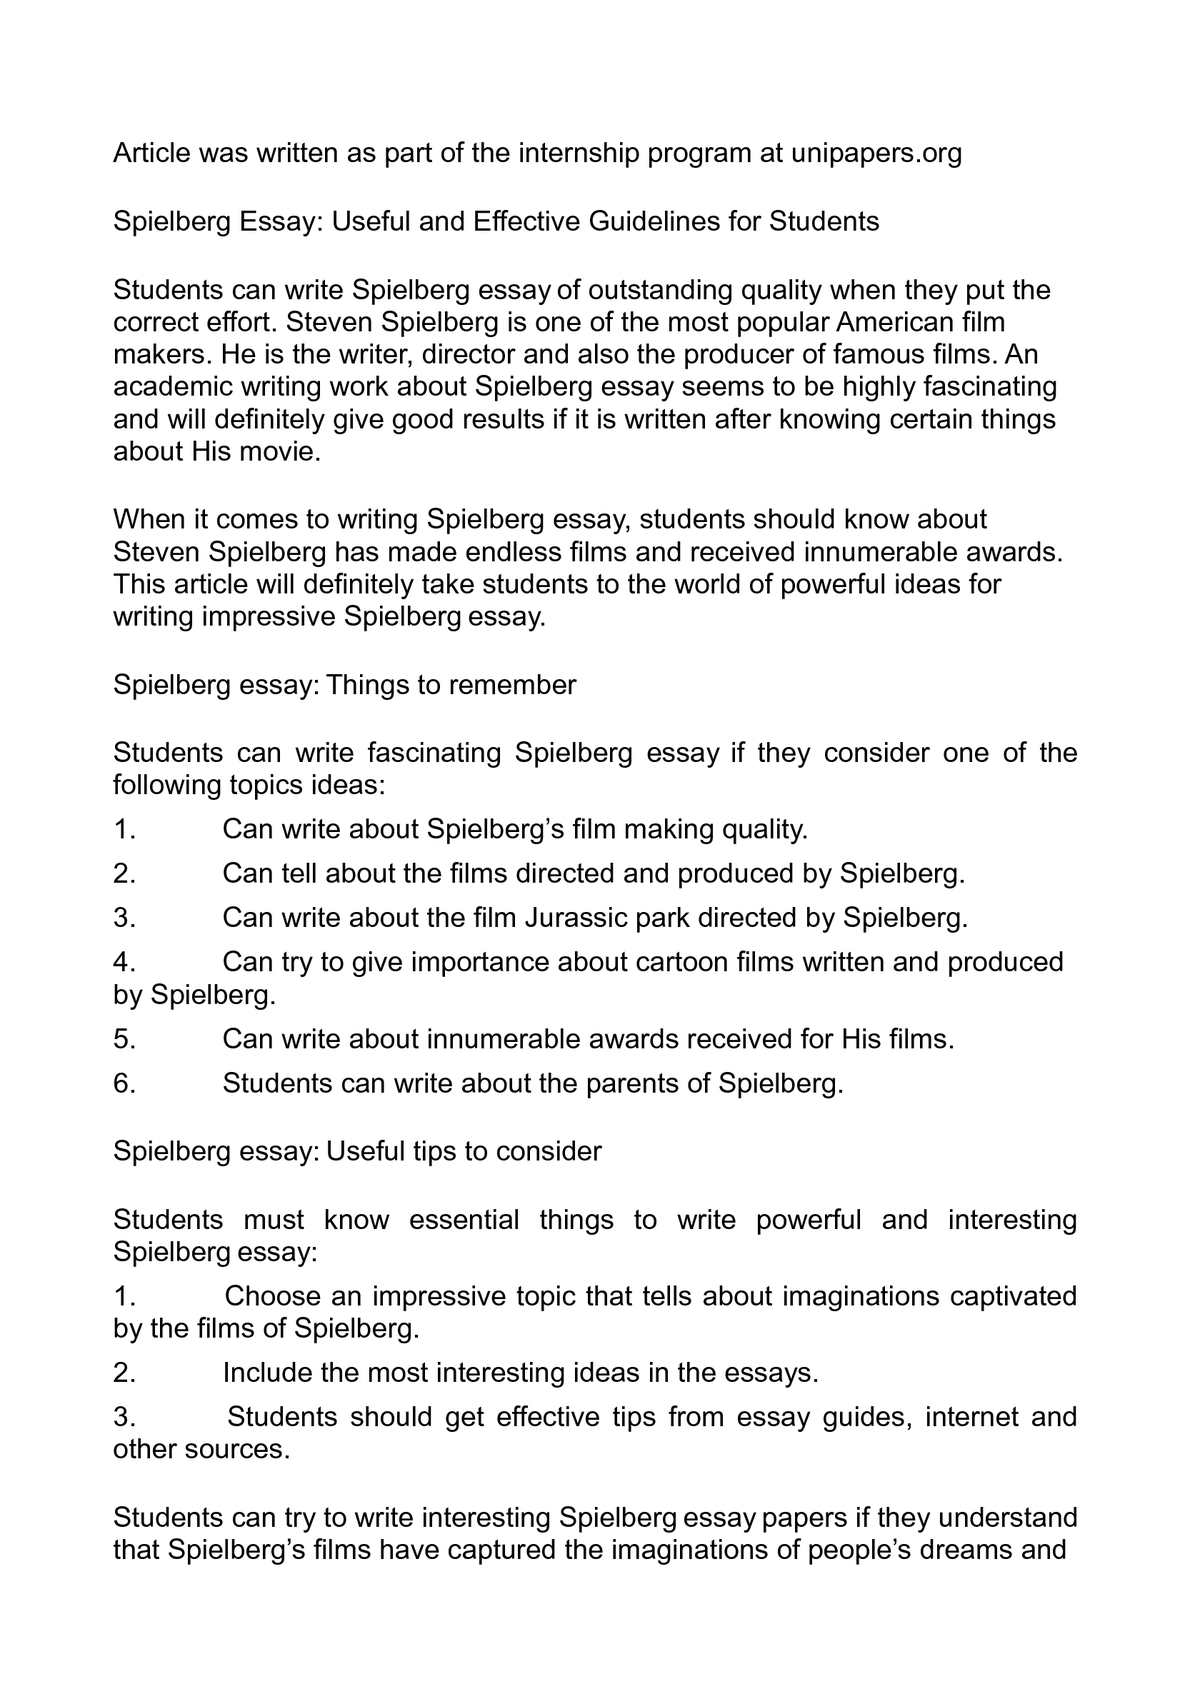 calamo   spielberg essay useful and effective guidelines for students